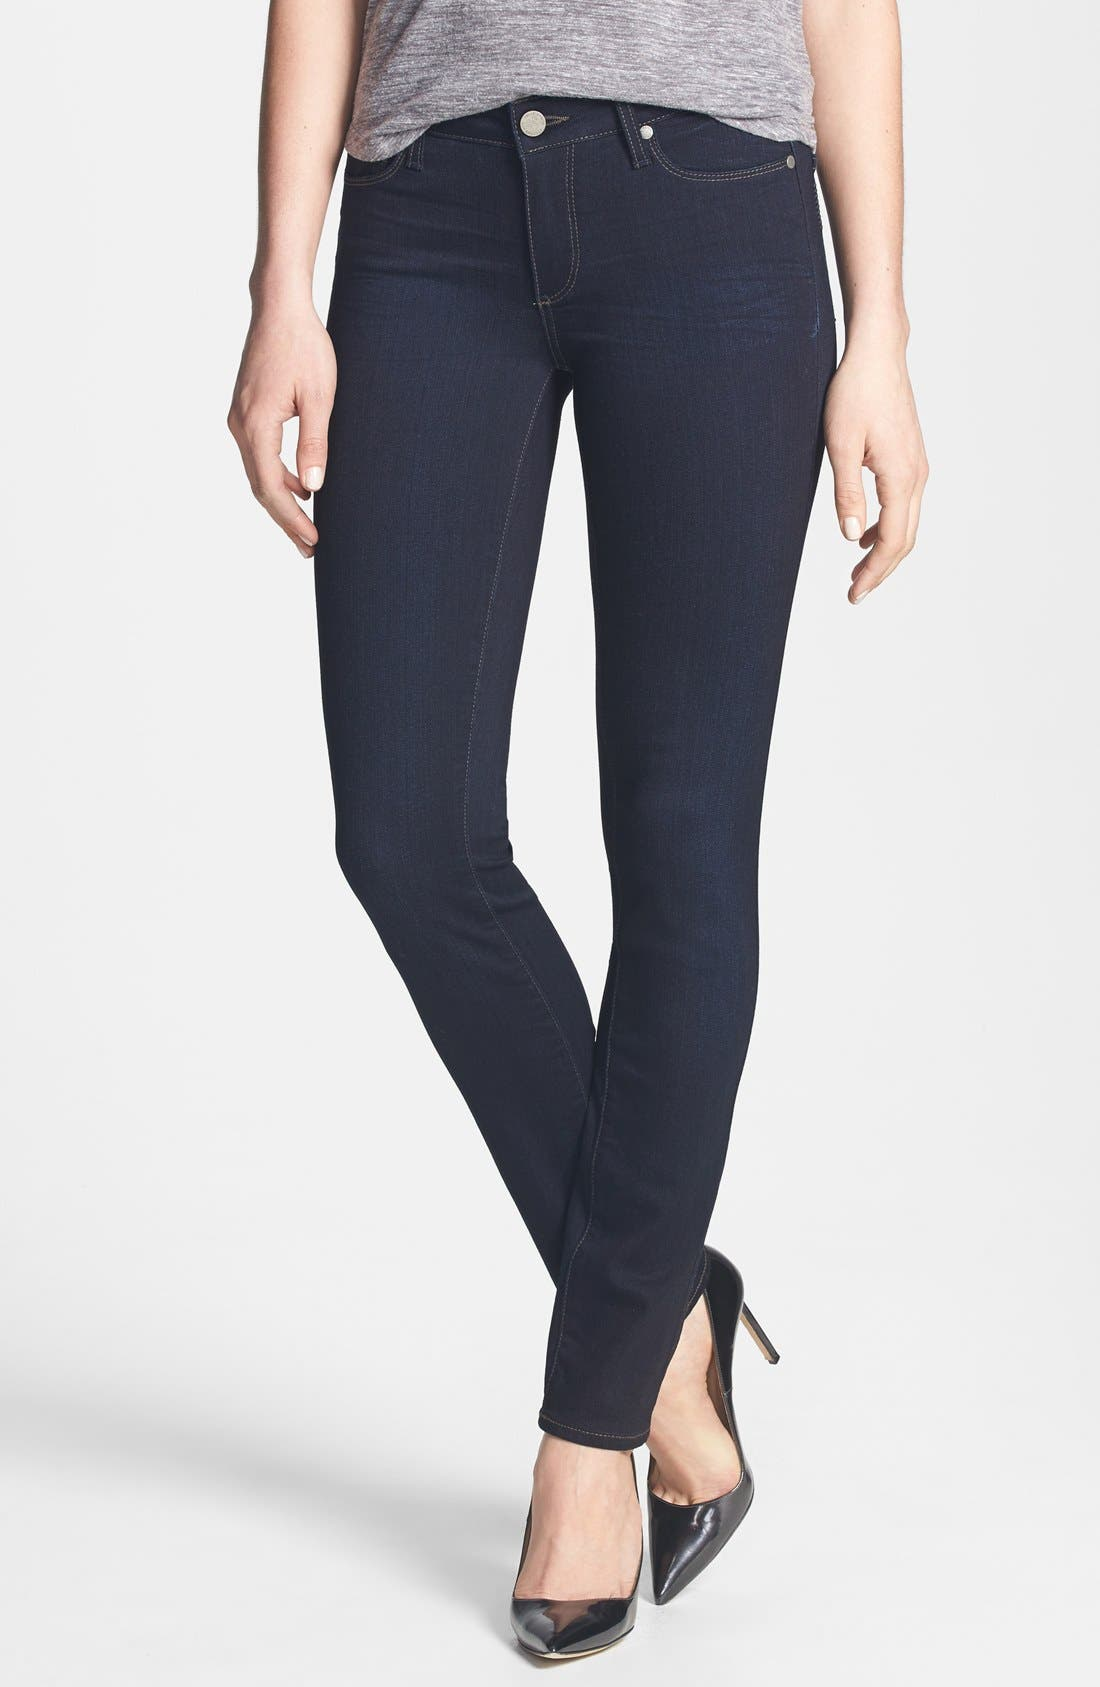 Alternate Image 1 Selected - PAIGE 'Transcend - Skyline' Skinny Jeans (Mona)